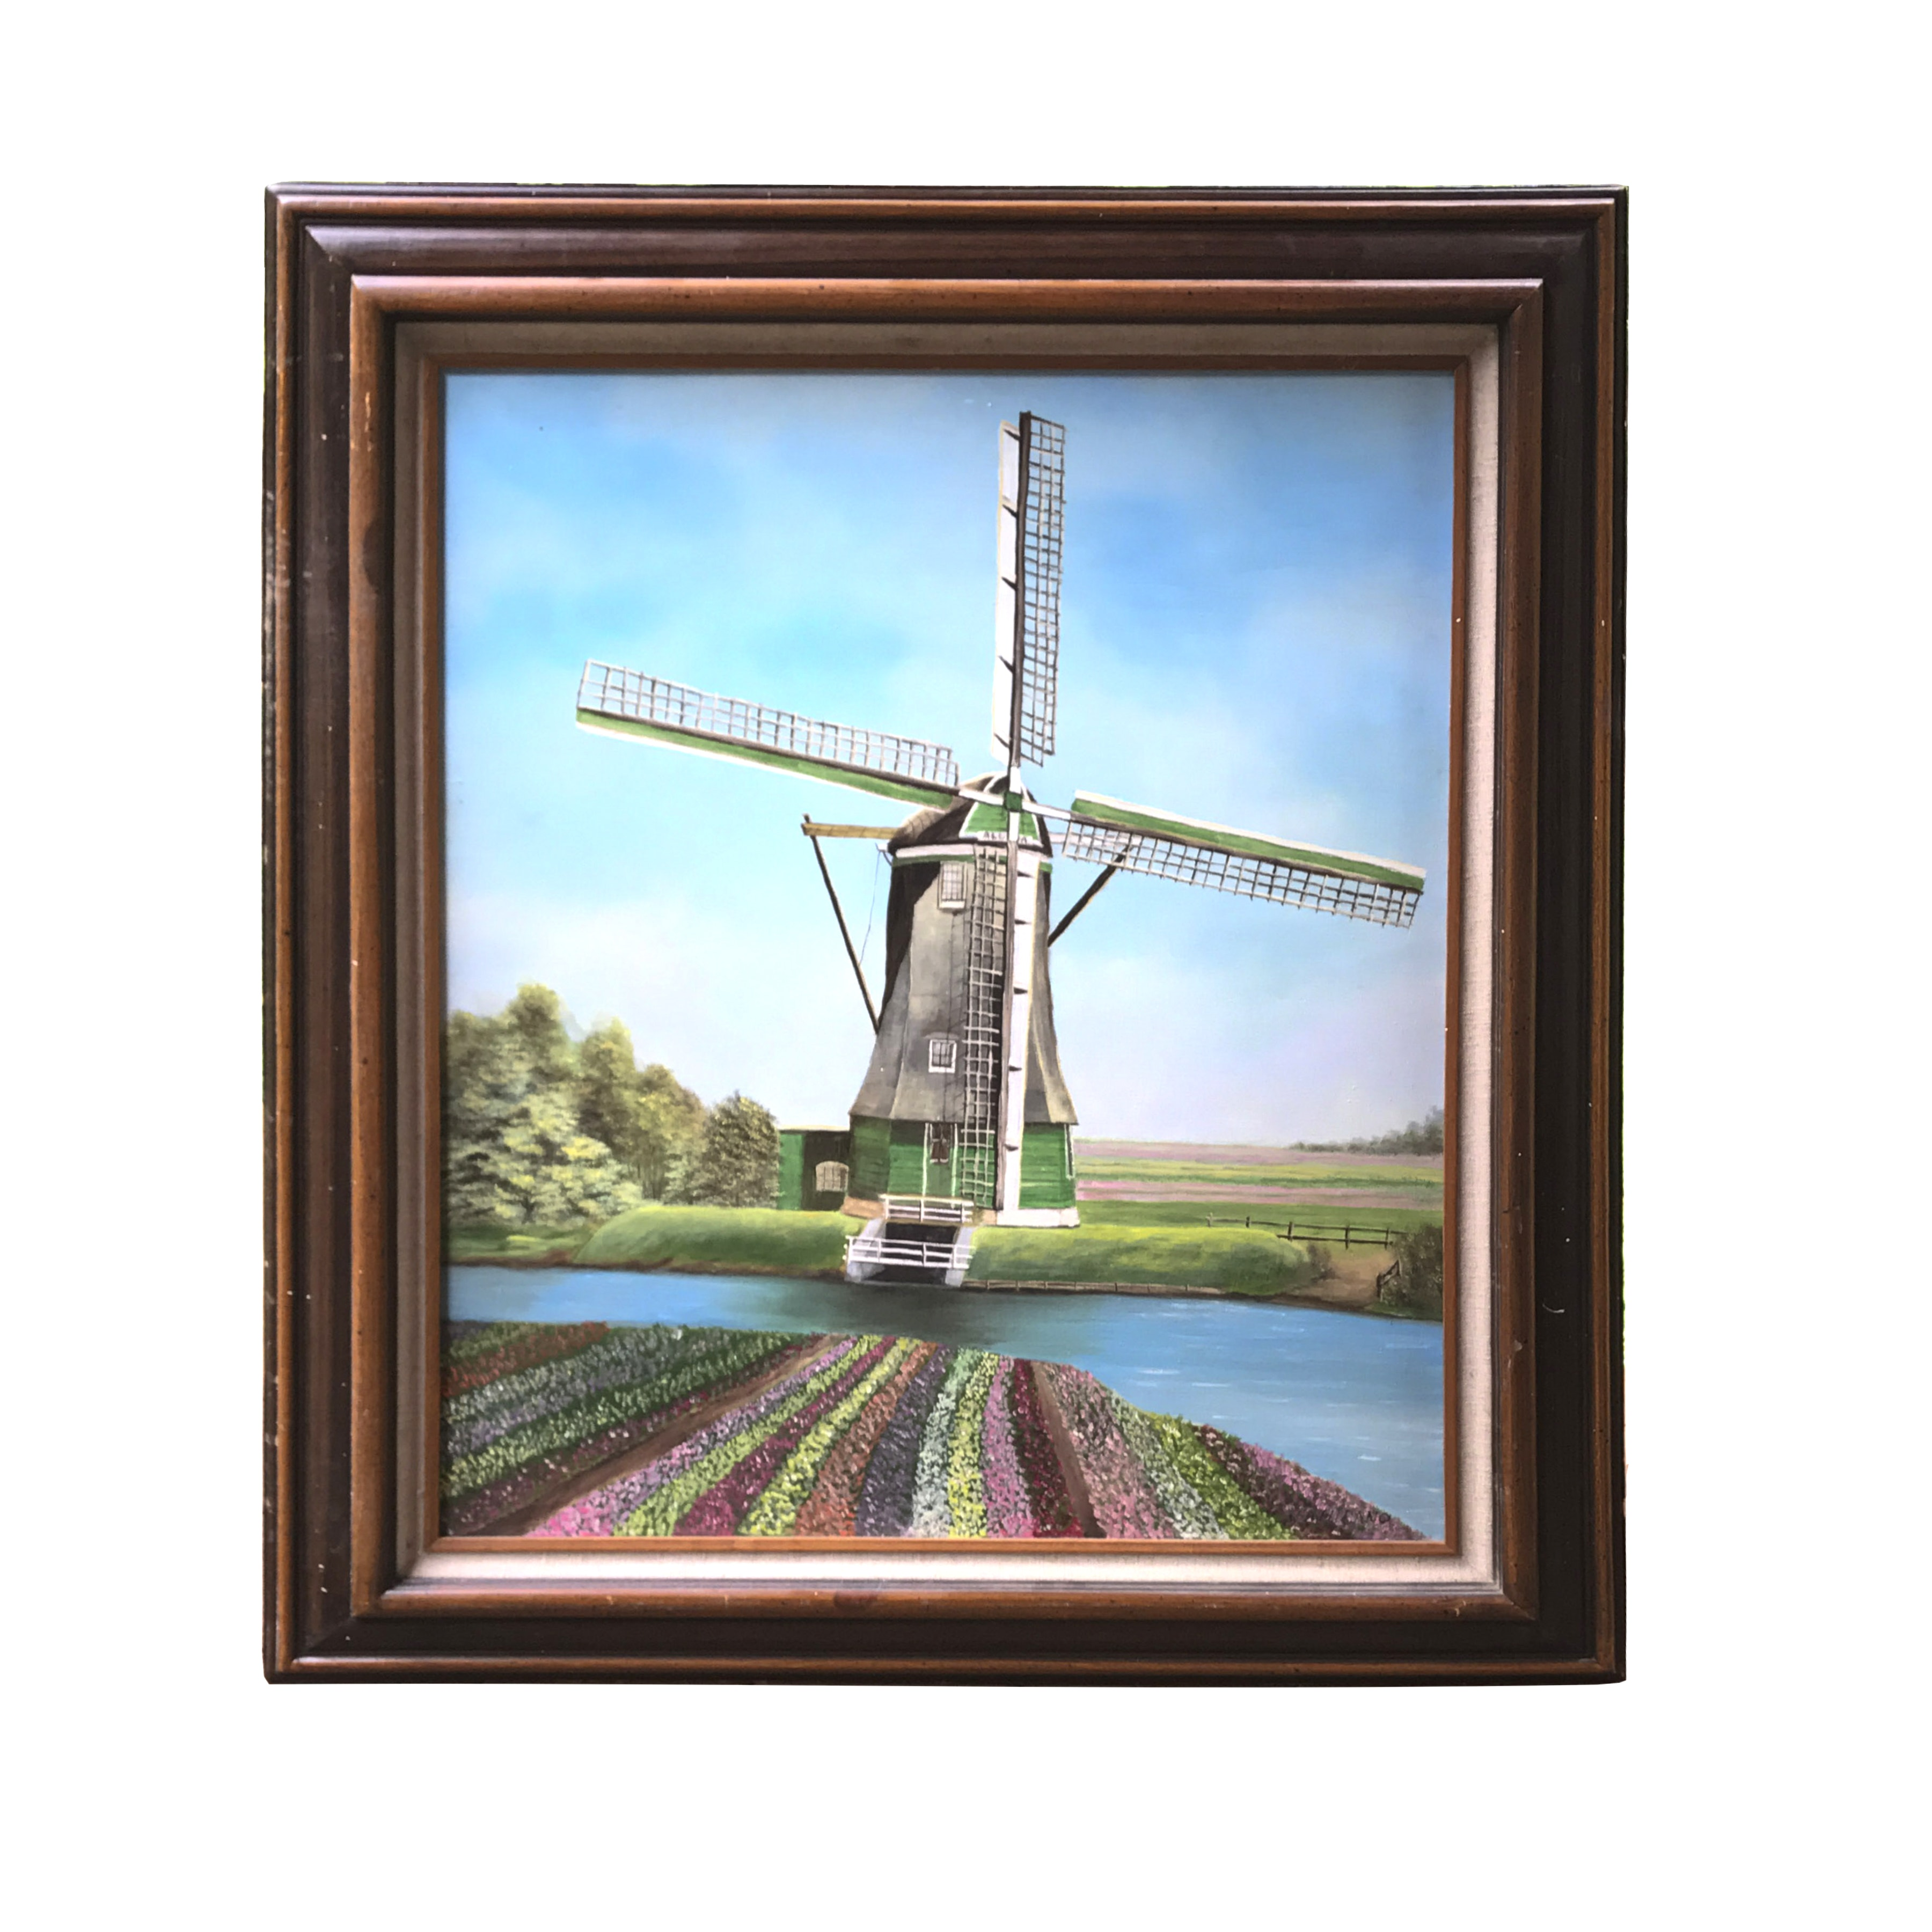 N.A. Hirano Oil on Canvas Landscape With Windmill